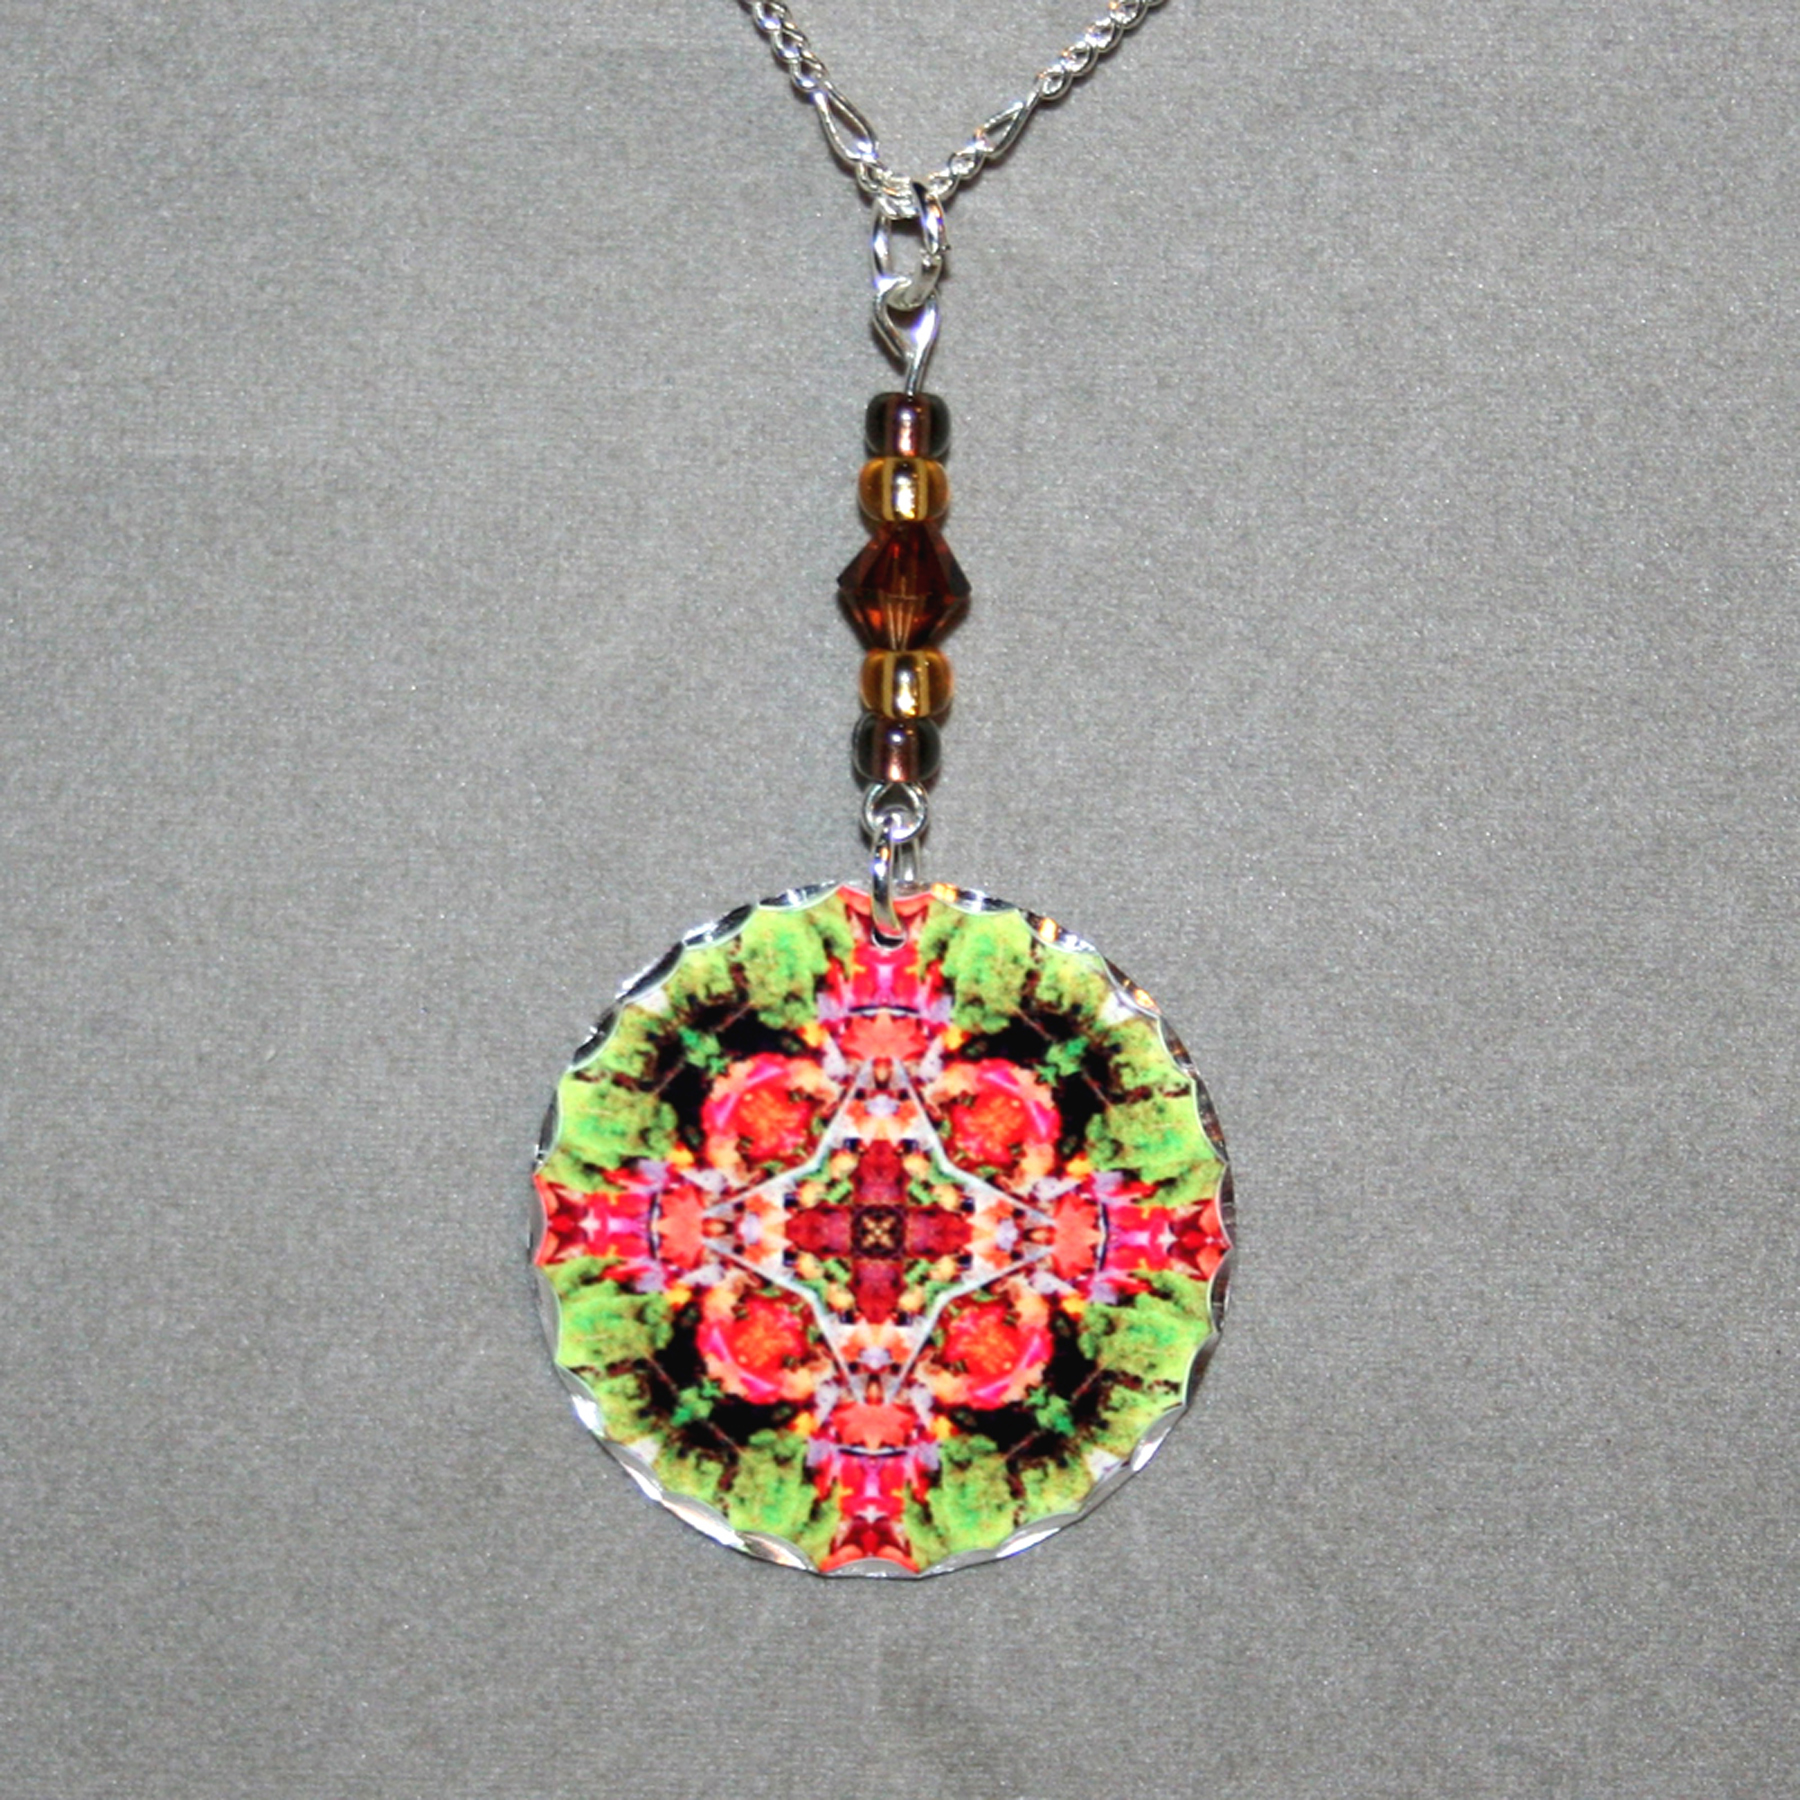 Autumn Leaves Charm Necklace Silver Mandala Sacred Geometry Kaleidoscope Fall Dreamcatcher